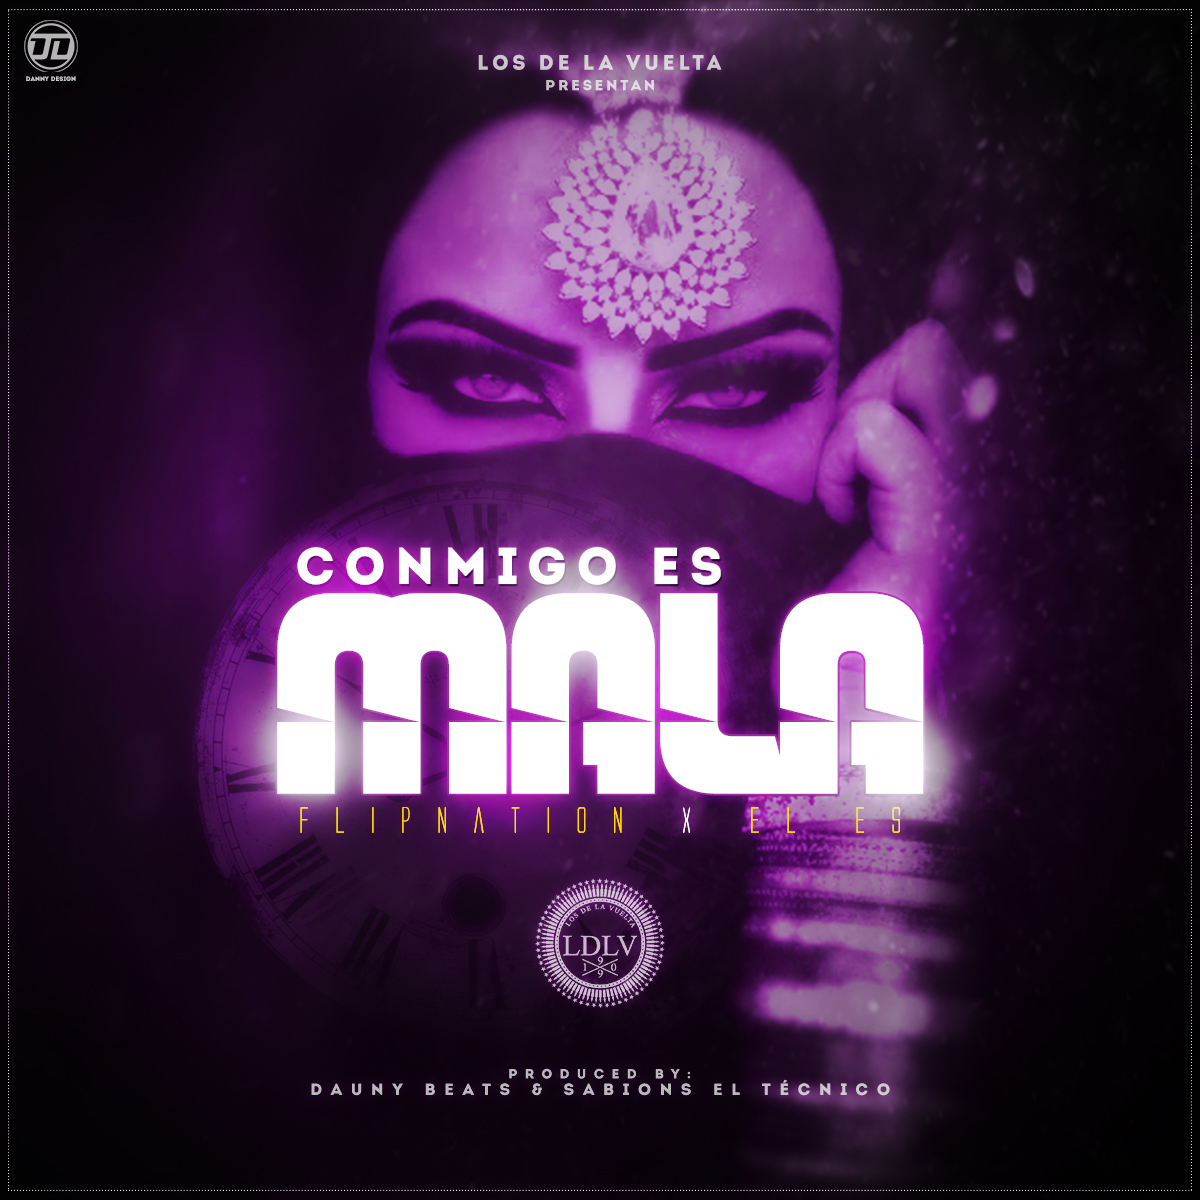 Flipnation Ft. El Es – Conmigo Es Mala (Video Oficial)